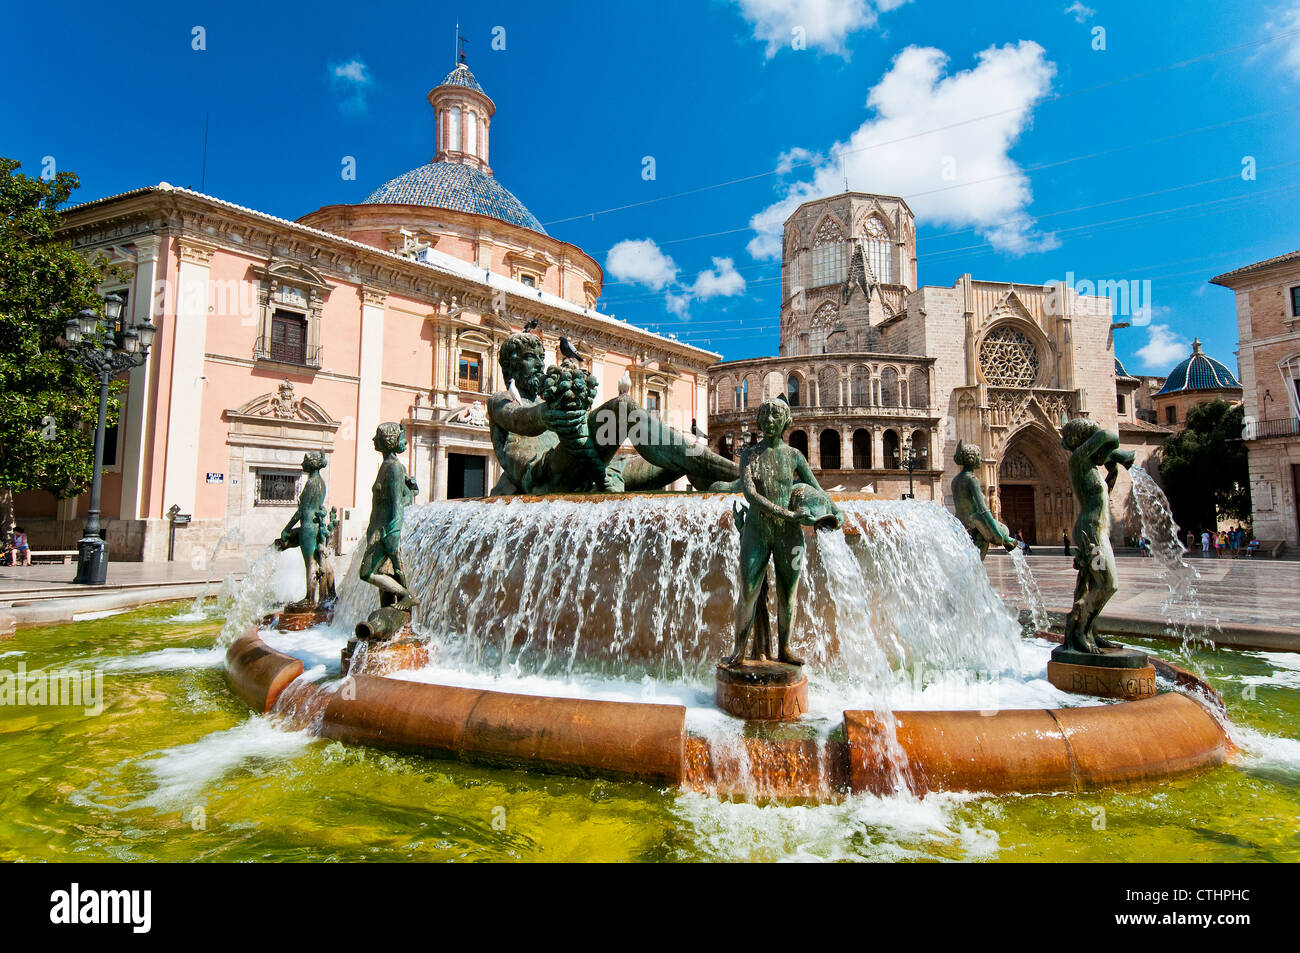 turia brunnen plaza de la virgen valencia spanien stockfoto bild 49563400 alamy. Black Bedroom Furniture Sets. Home Design Ideas